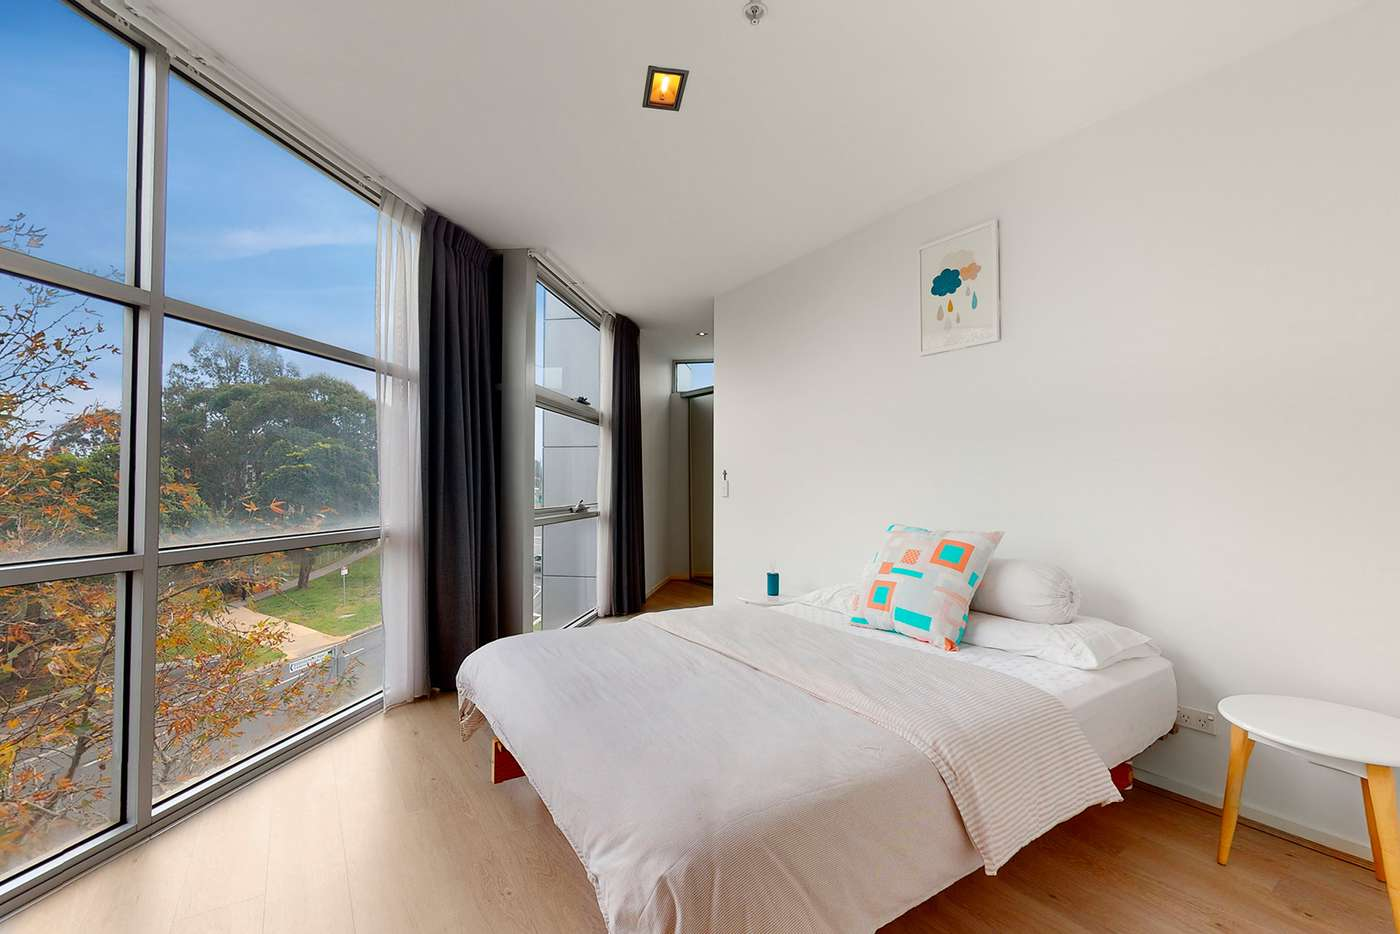 Sixth view of Homely apartment listing, 26/568 New Street, Brighton VIC 3186